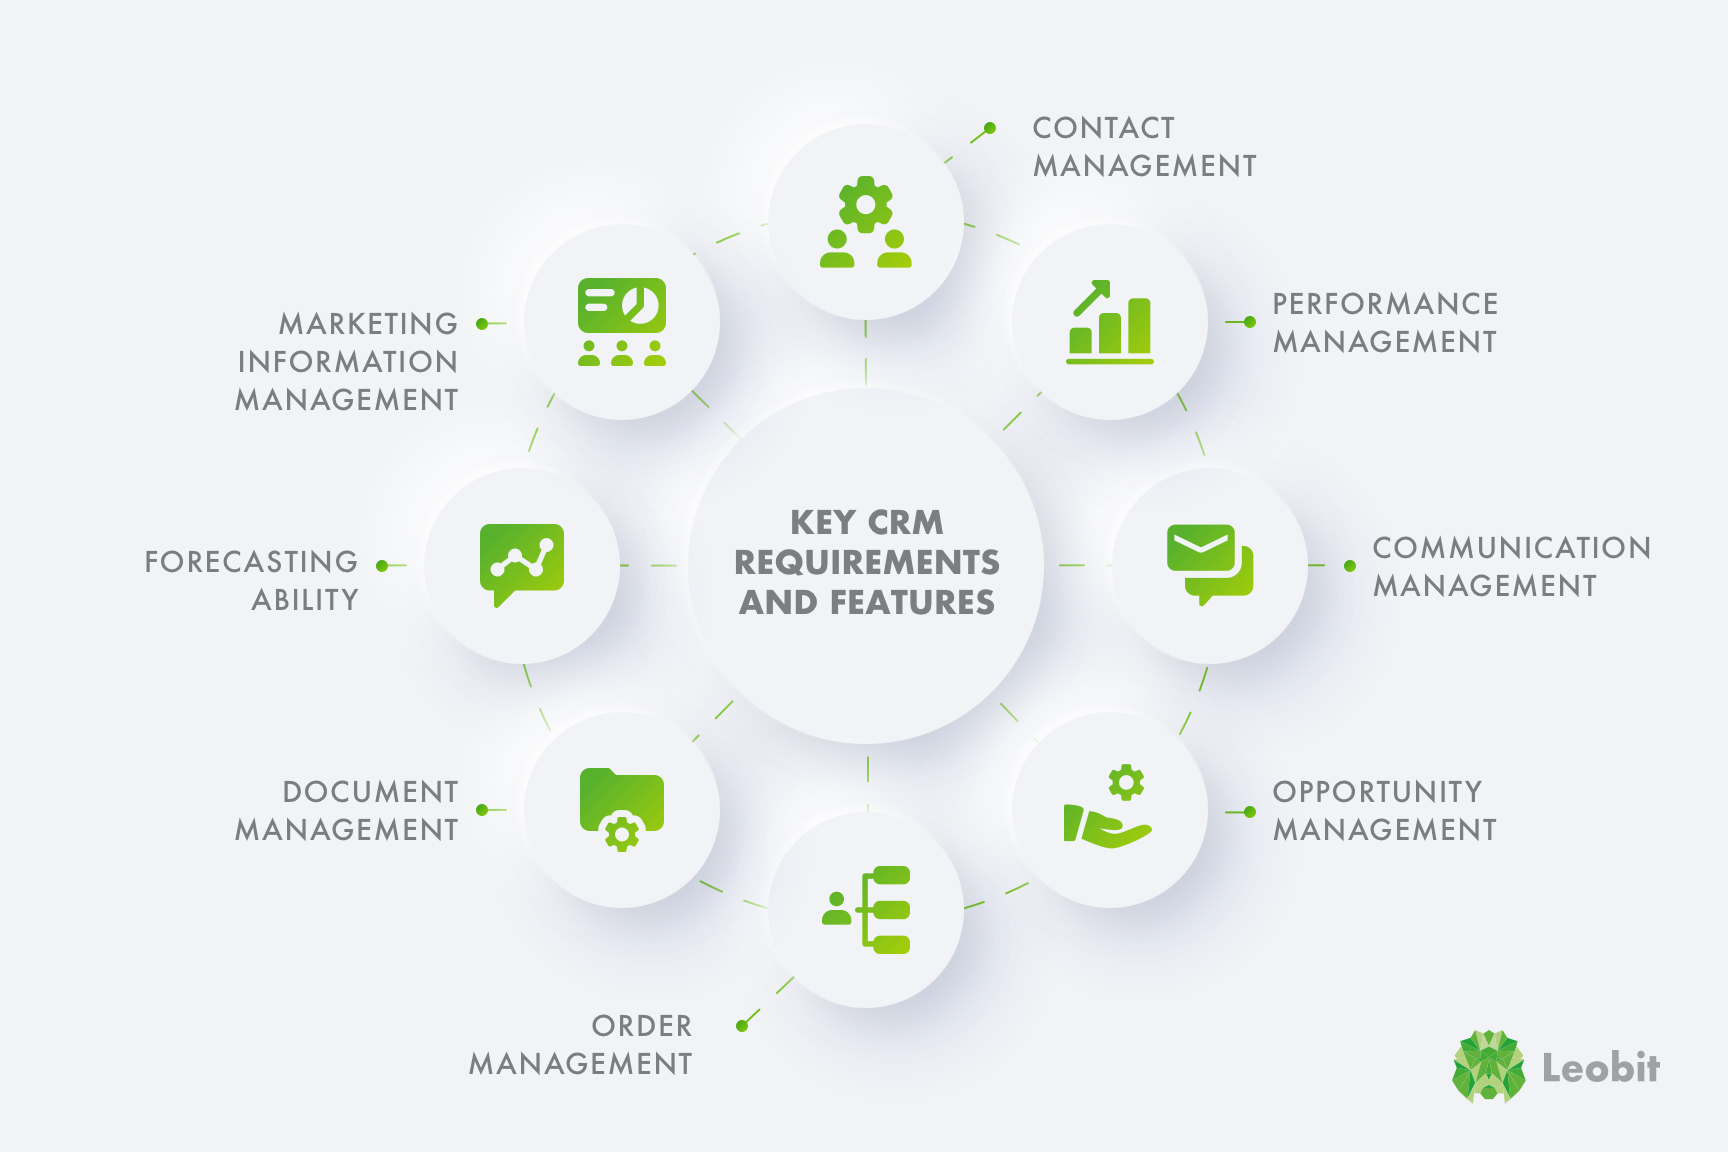 Key CRM requirements and features